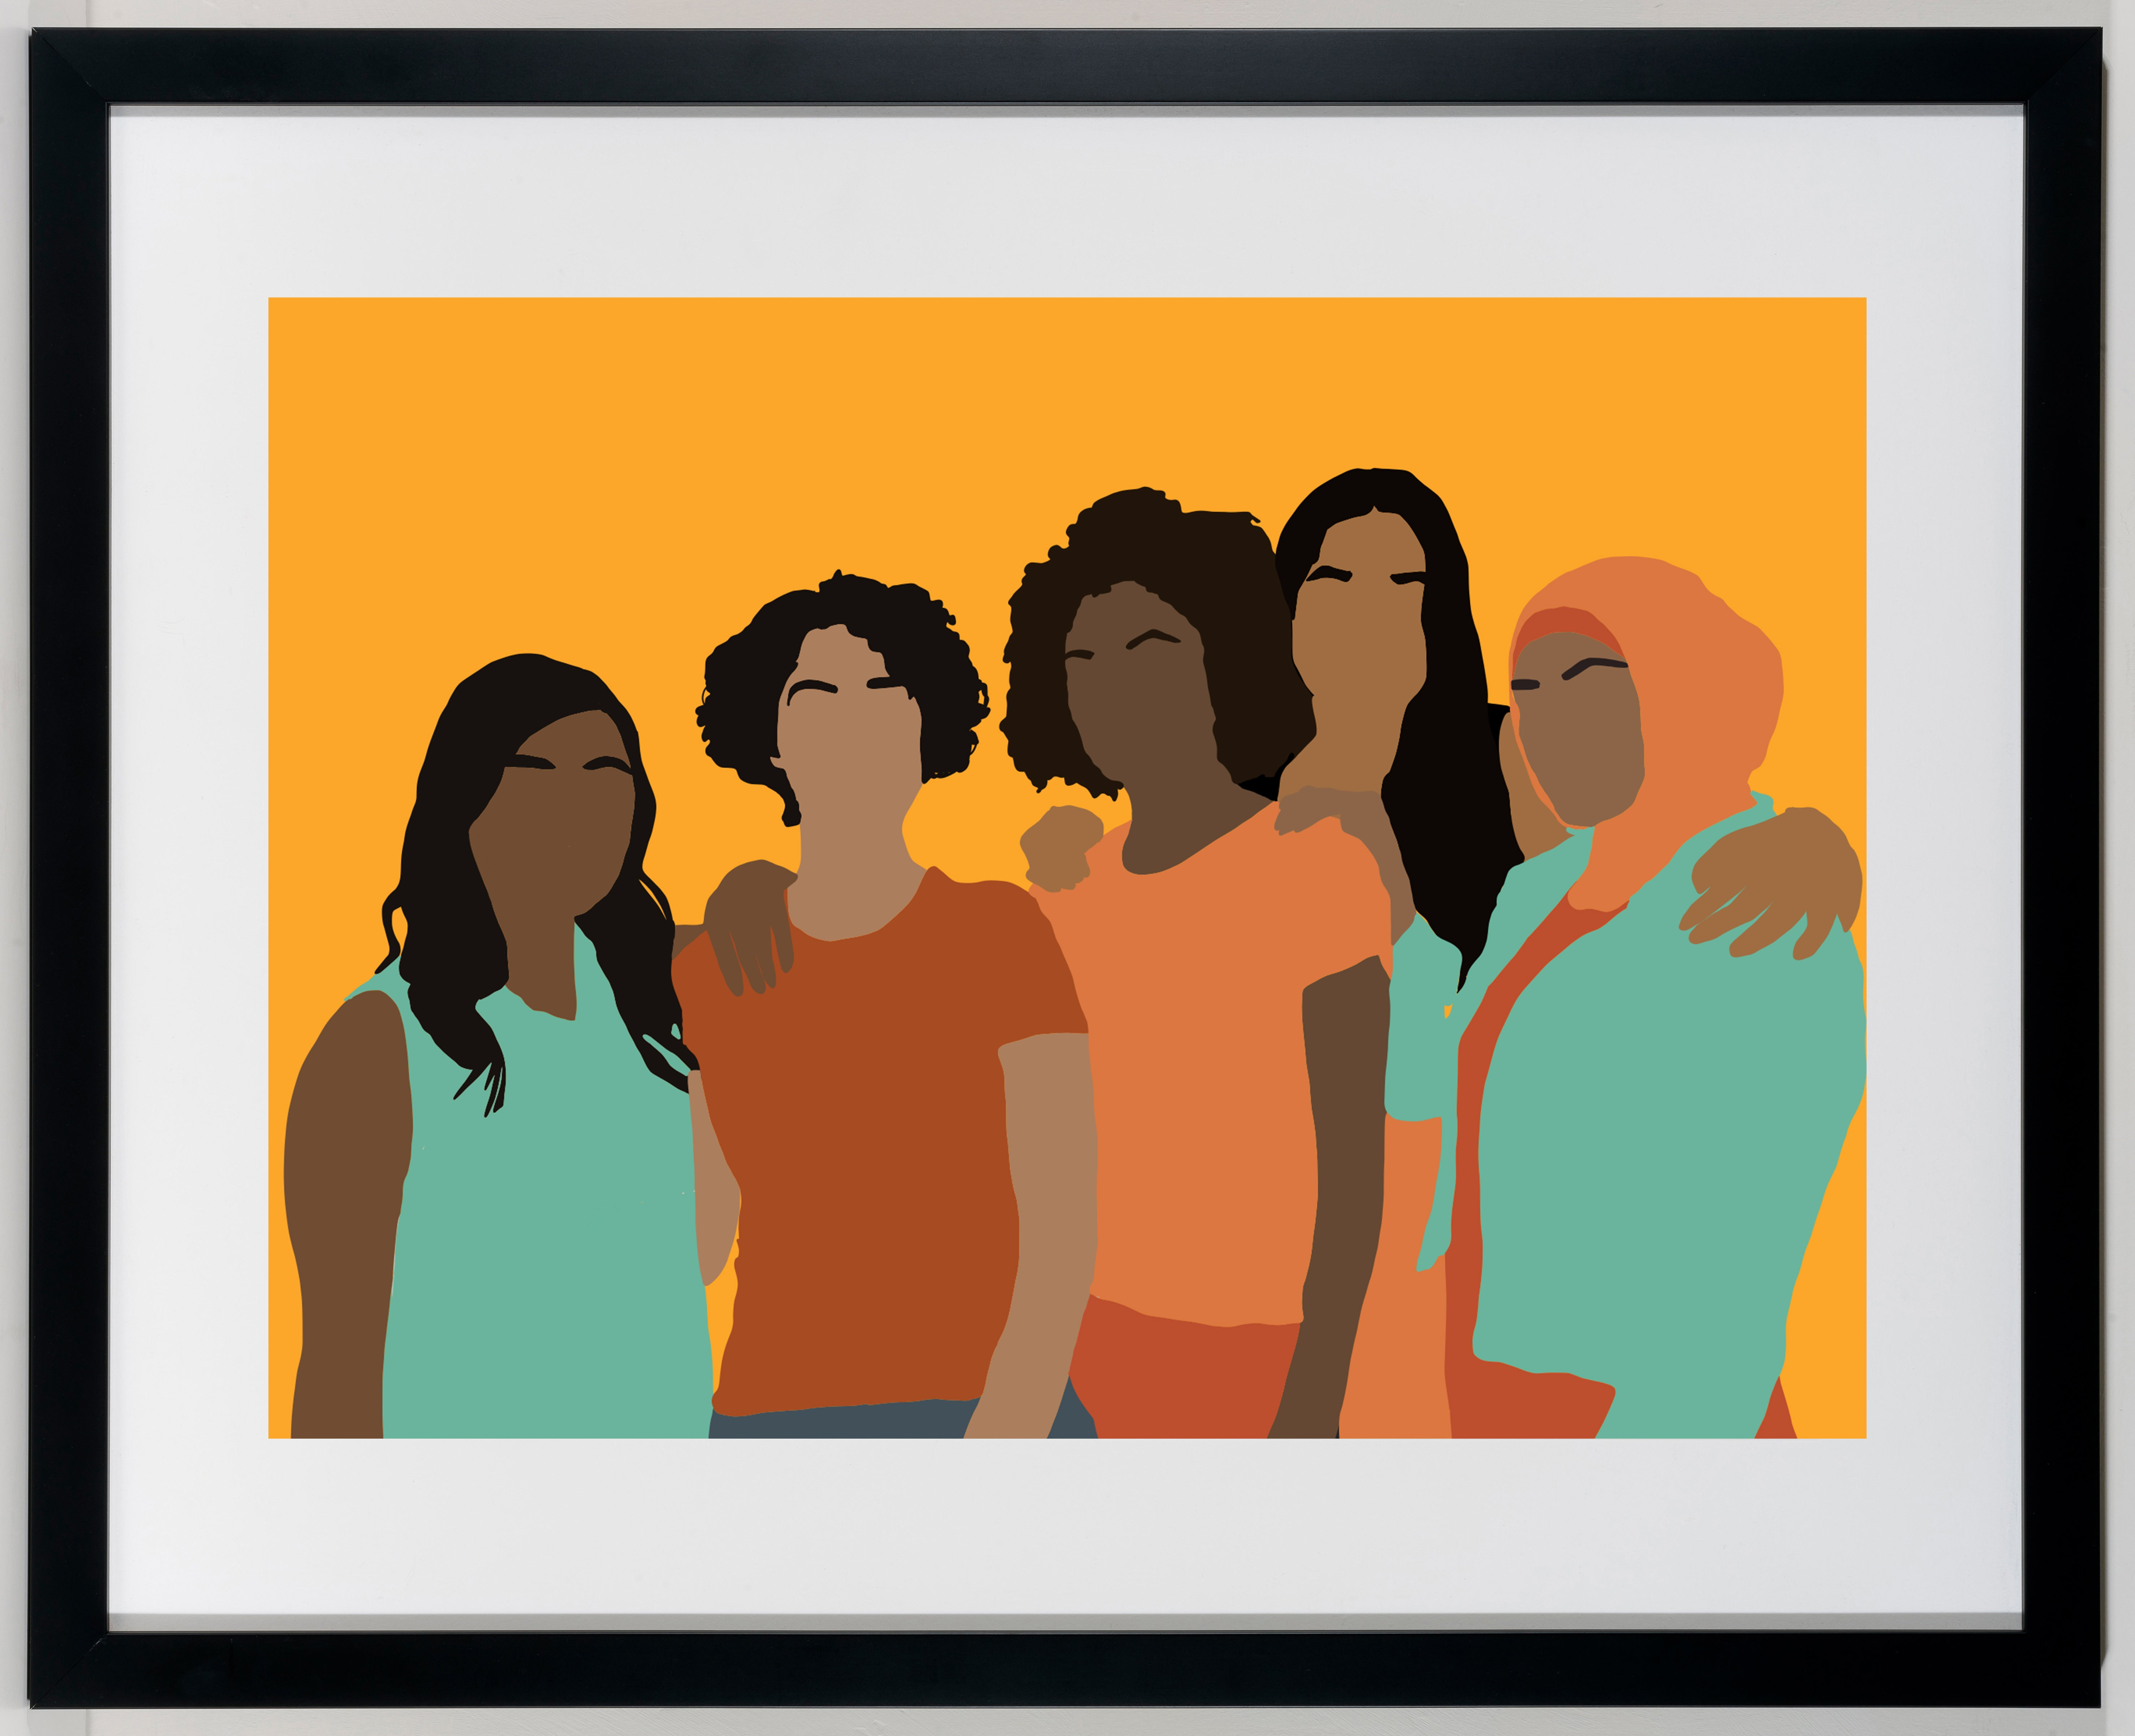 Congregate - Framed Colorful Print of Womanhood / Sisterhood / Women of Color